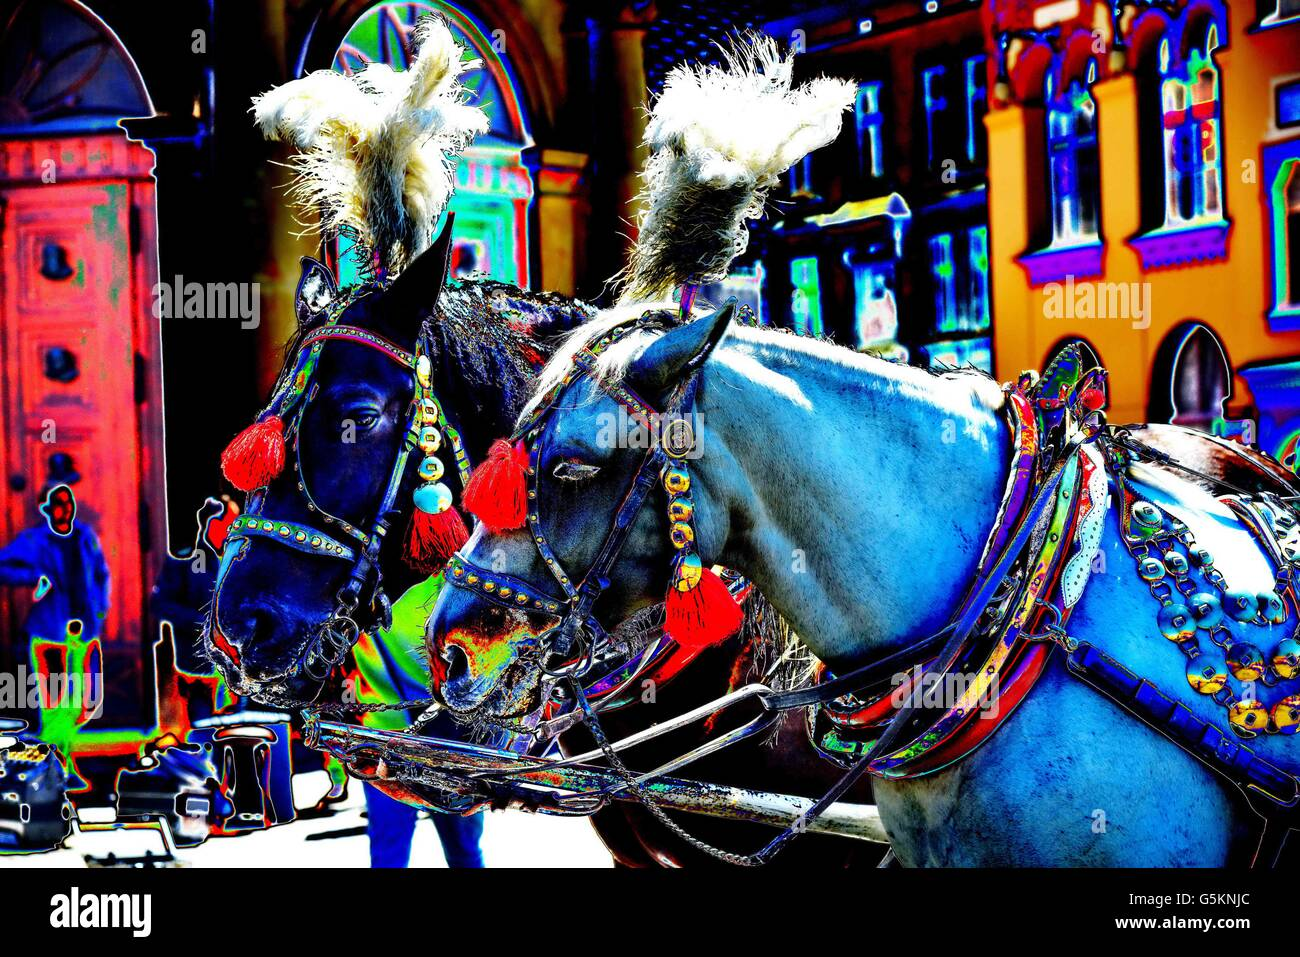 Beautifully decorated horses of a carriage on Krakows famous market place Rynek - Stock Image